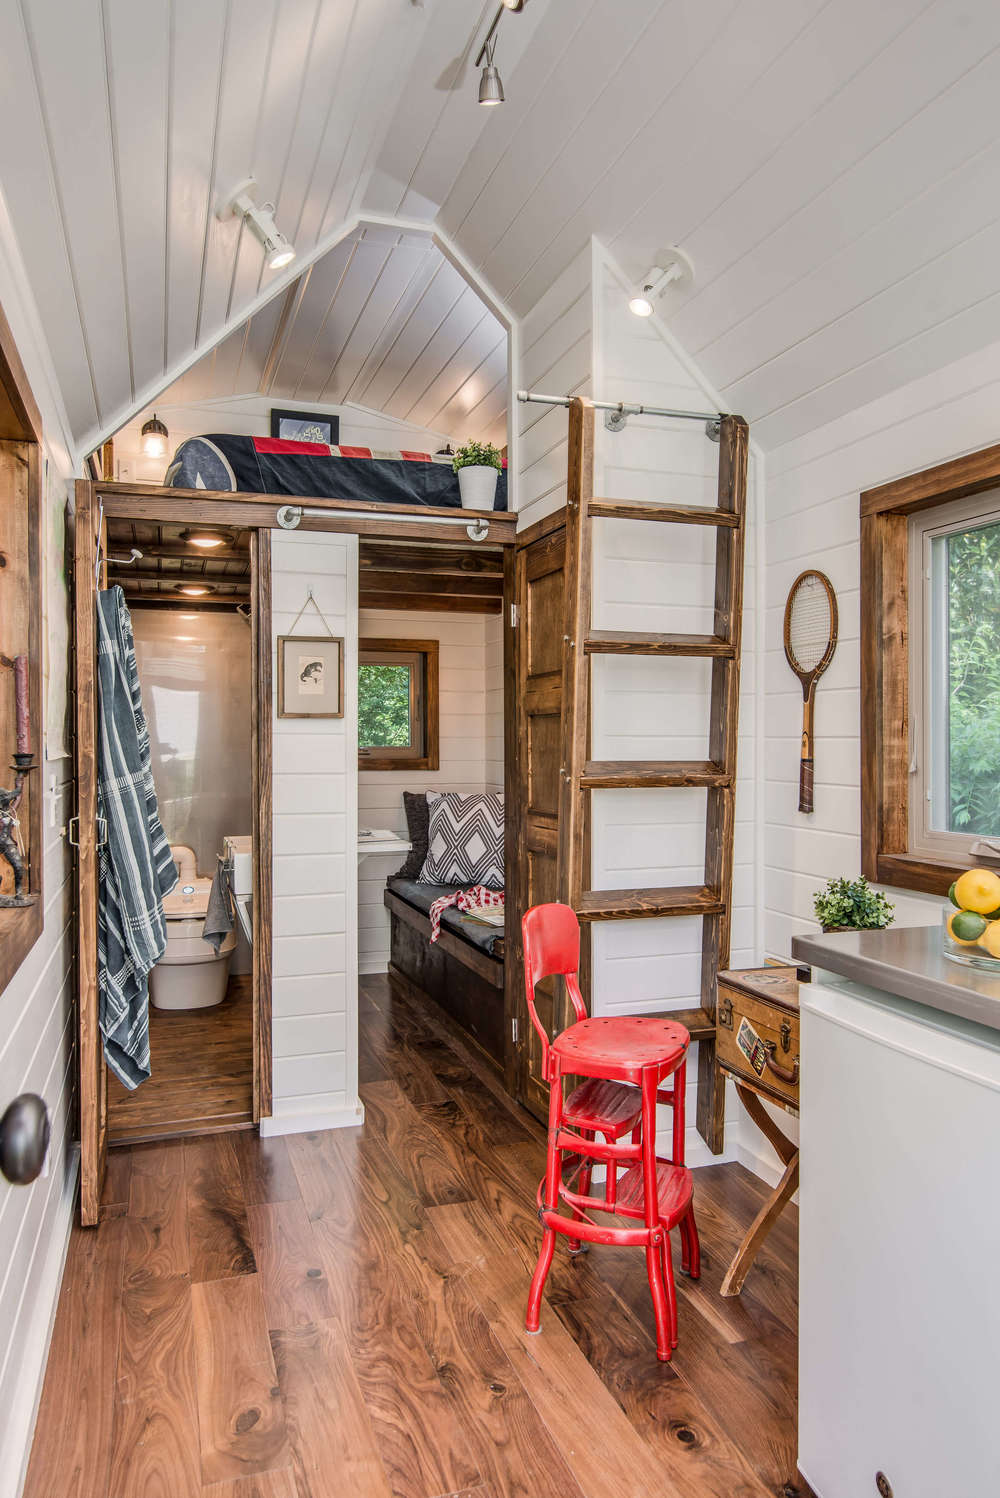 cedar-mountain-new-frontier-tiny-homes-2